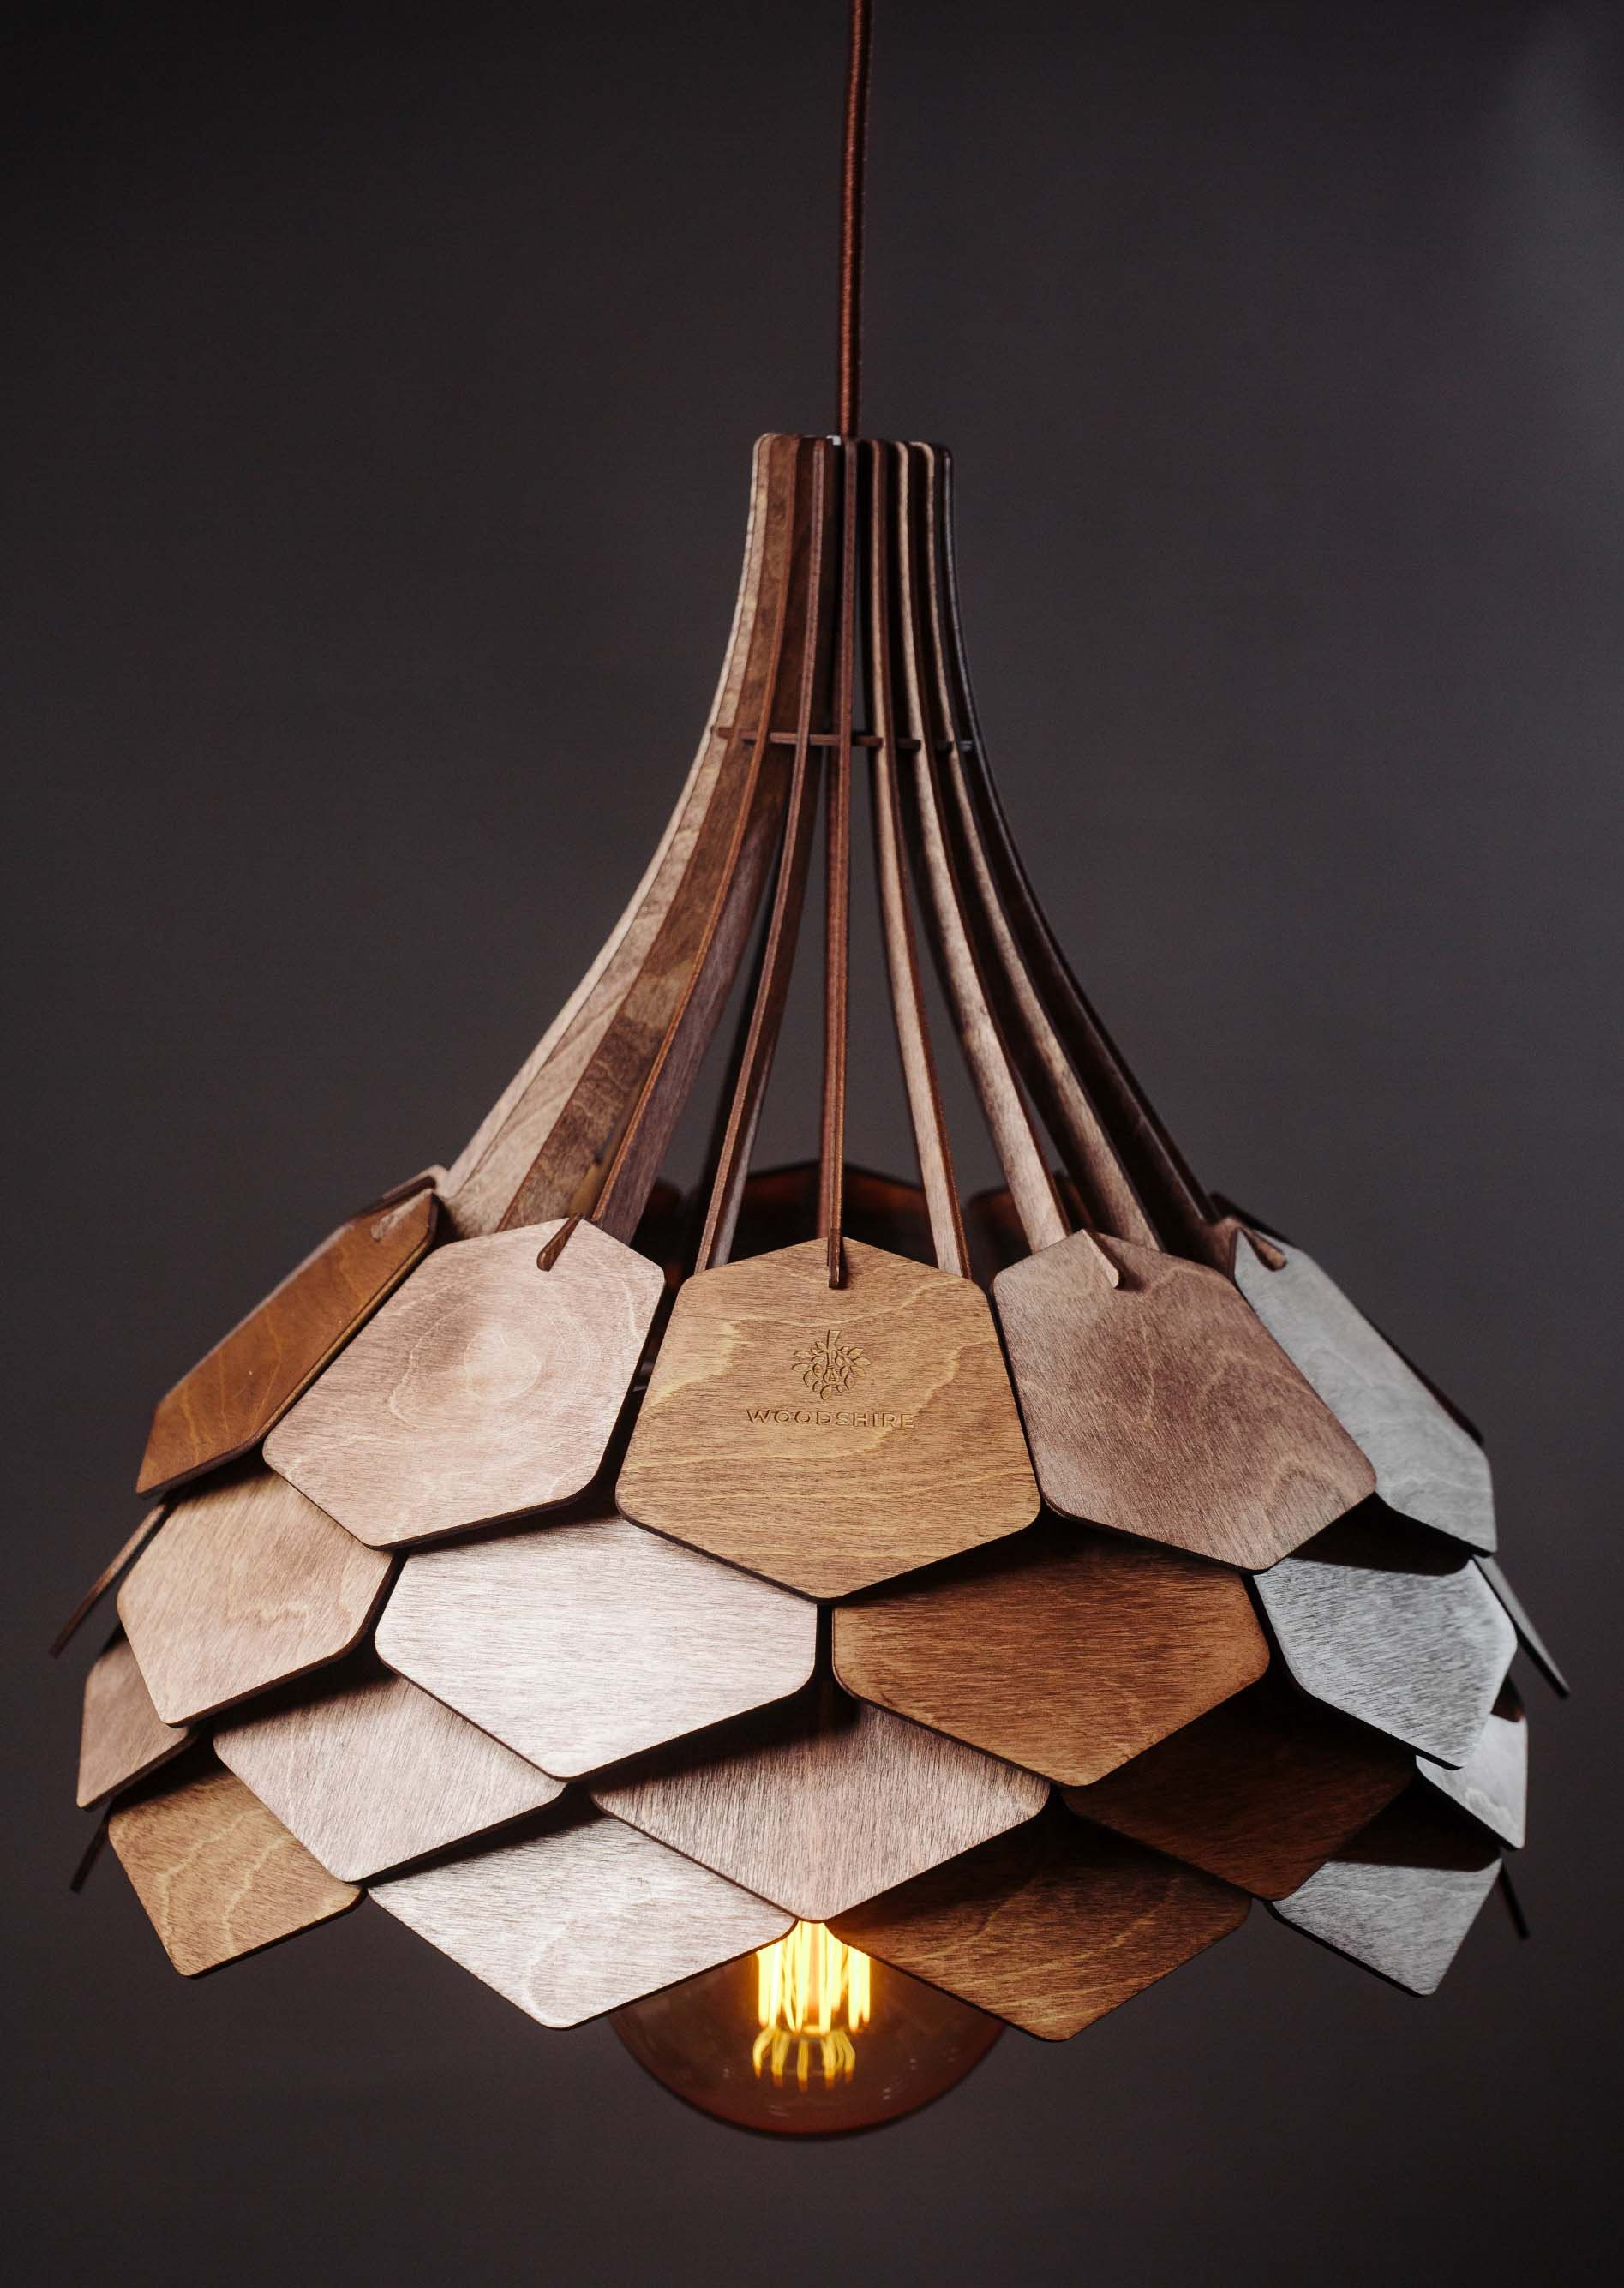 Lustre Lampe Lustre Nuances Scandinave Lampe En Bois Clair Image 1 Wooden Lampshade Wood Lamp Shade Wood Pendant Light